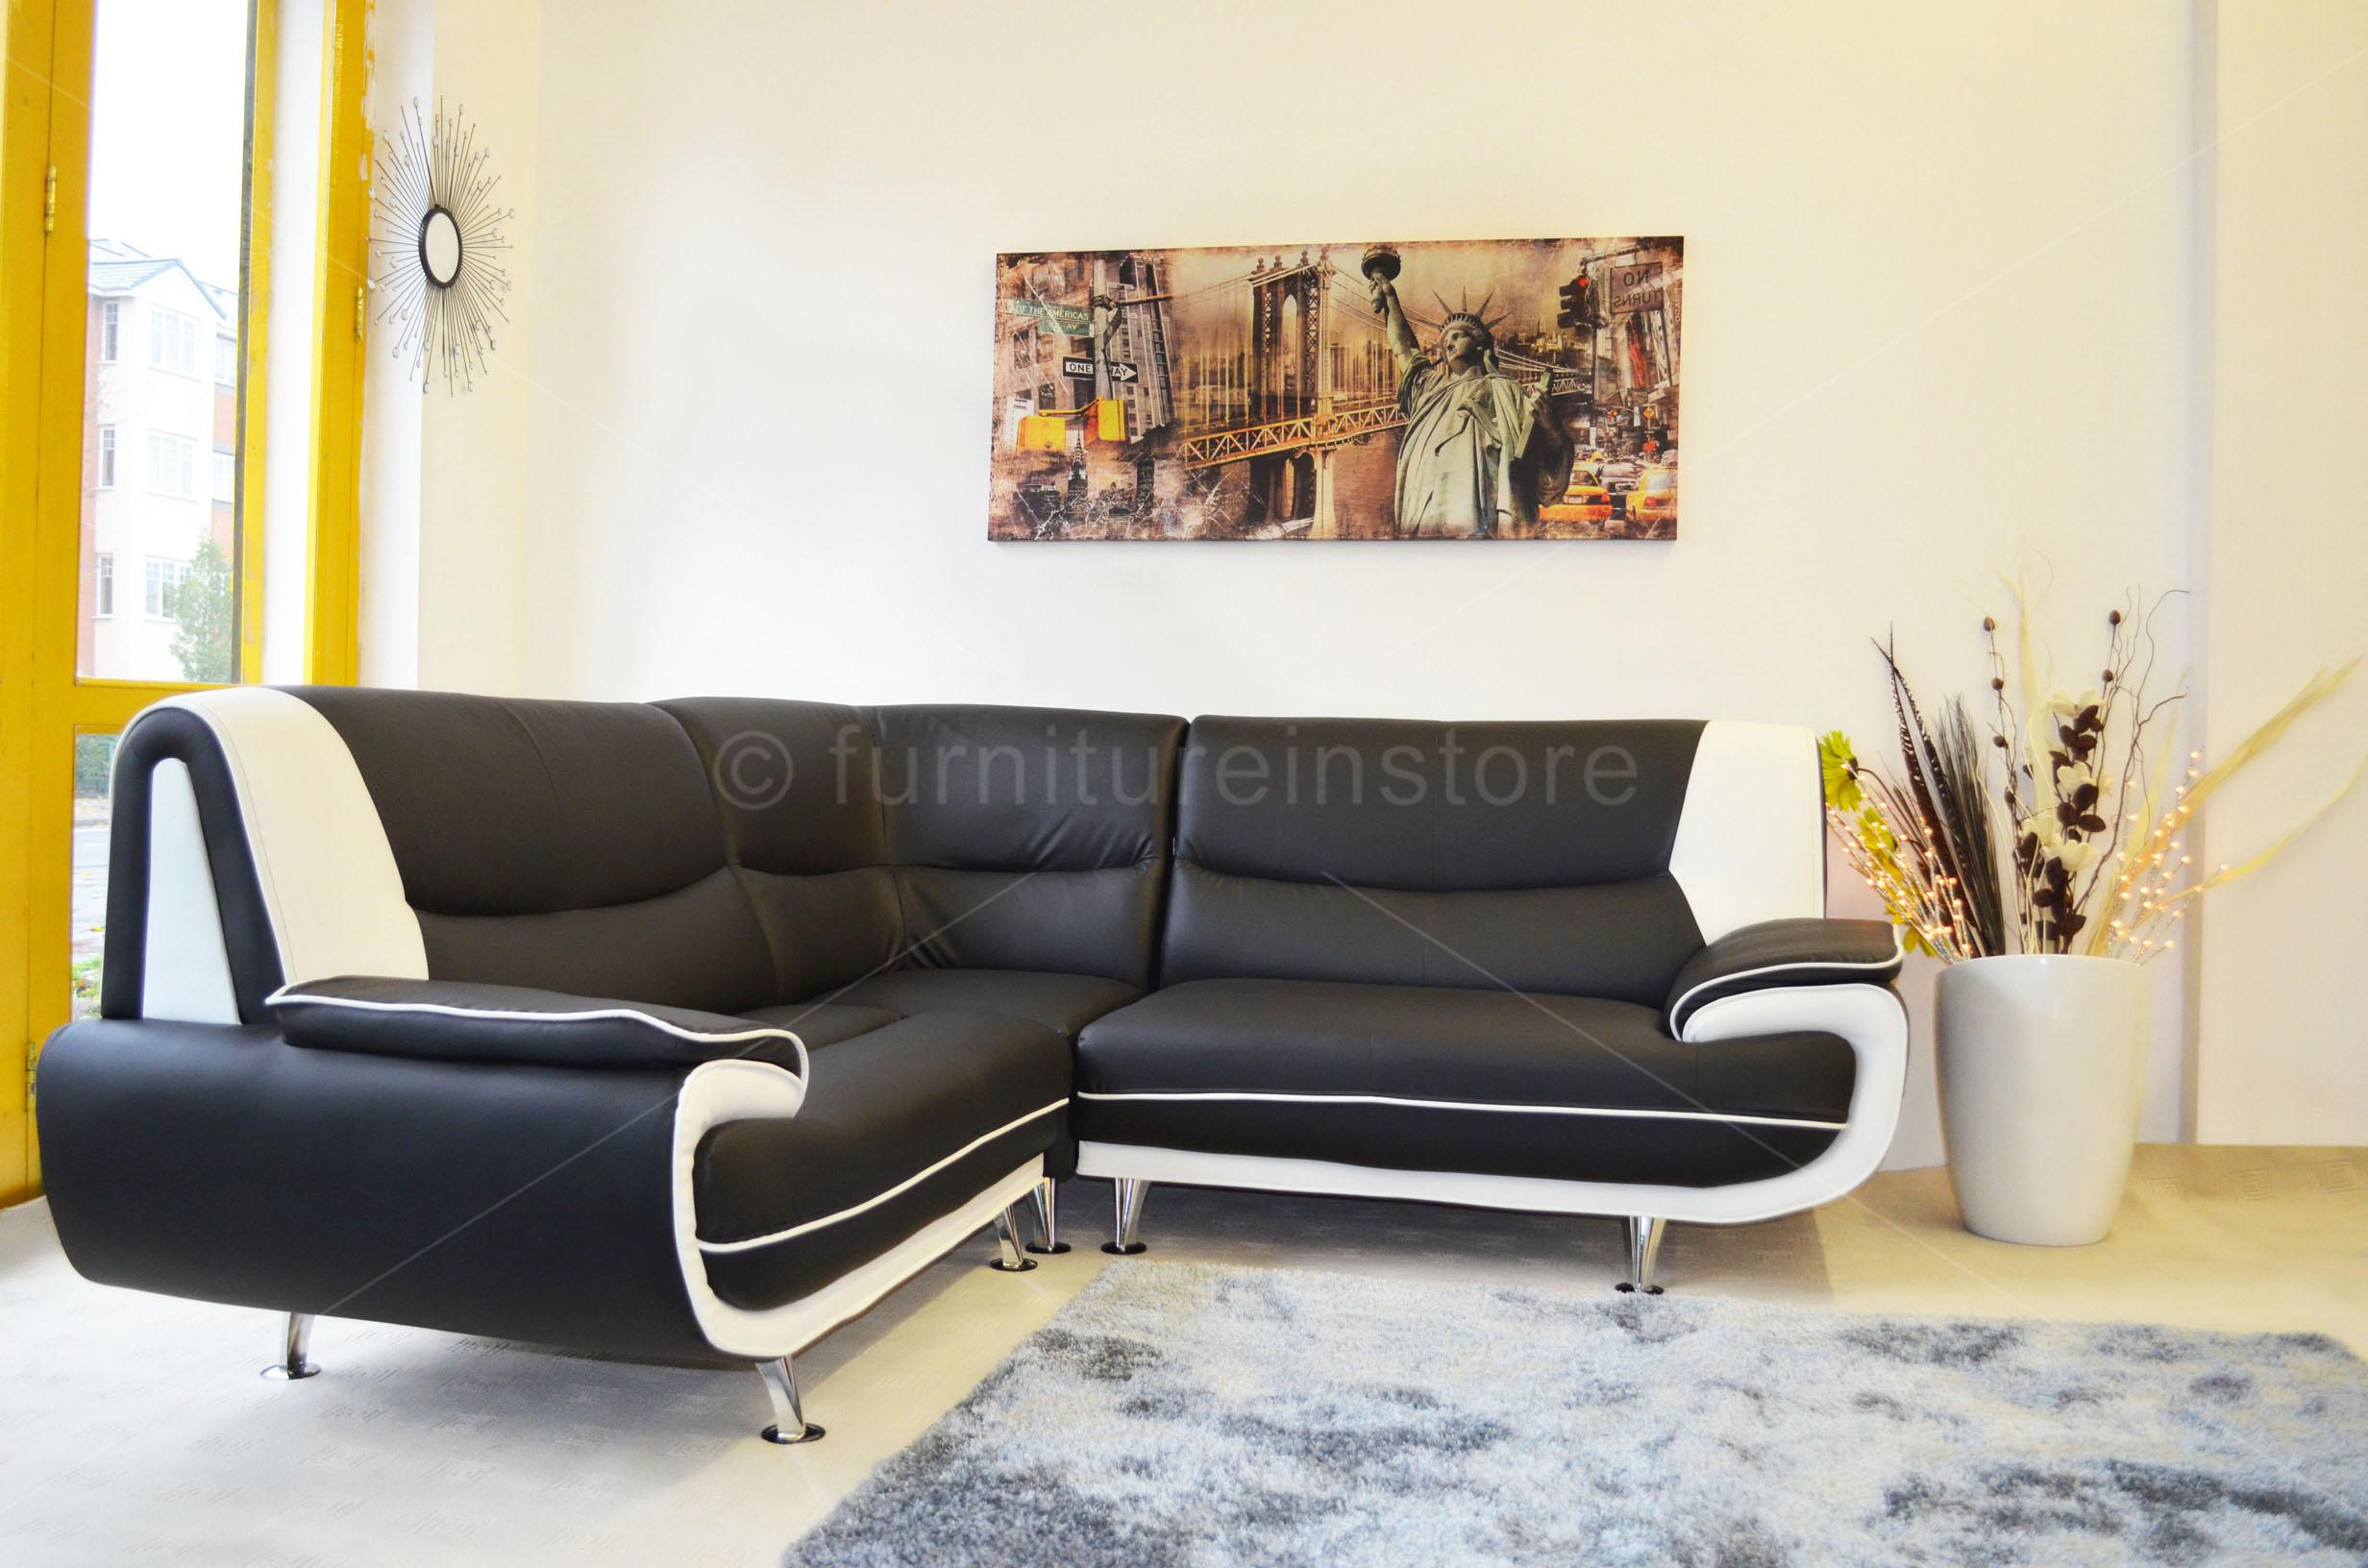 faux leather corner sofa sofa passero corner sofas setttee on sale in the uk. Black Bedroom Furniture Sets. Home Design Ideas